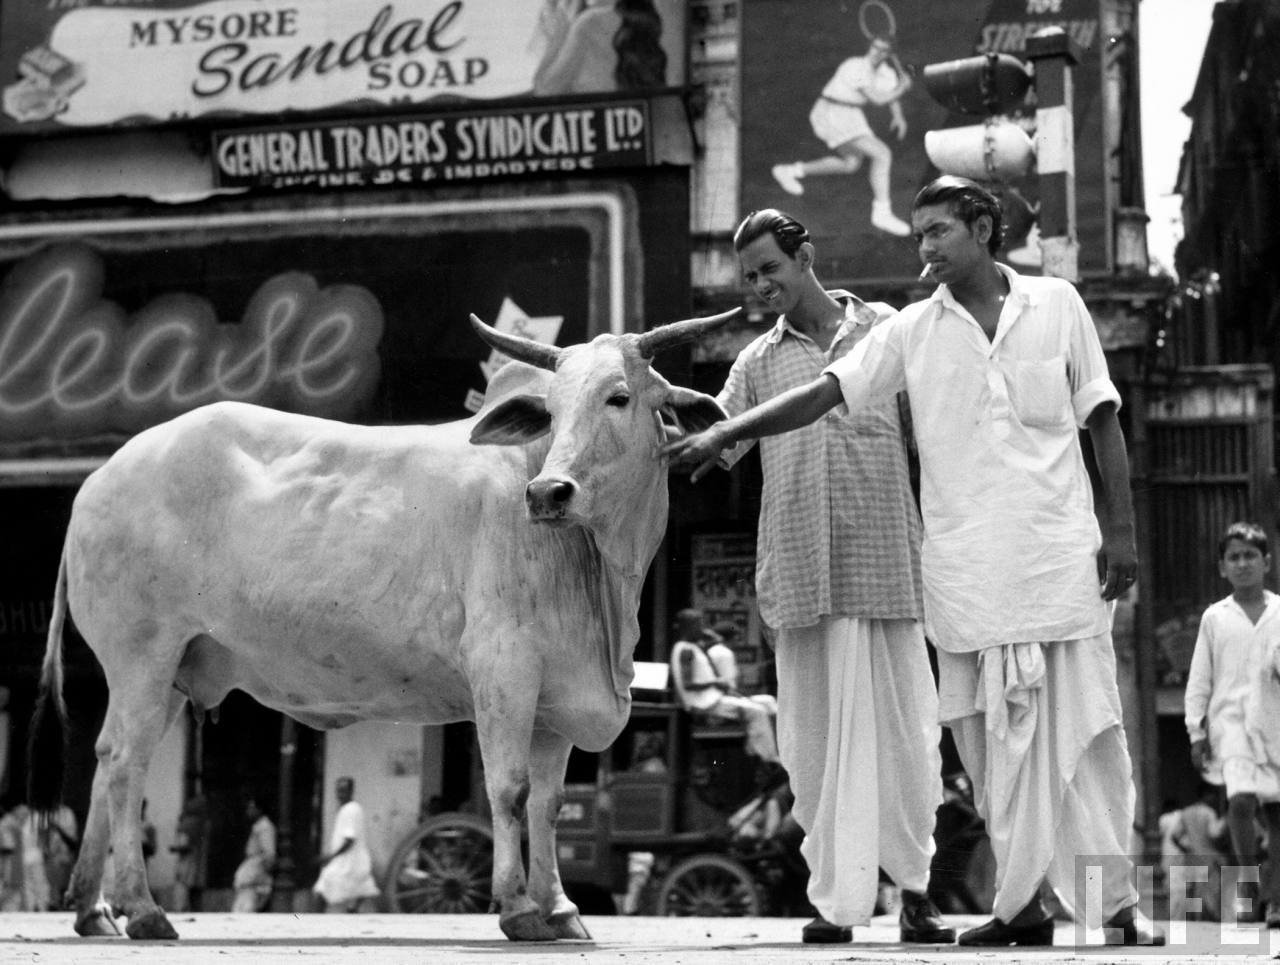 Two men touching a cow on a busy city street - 1946